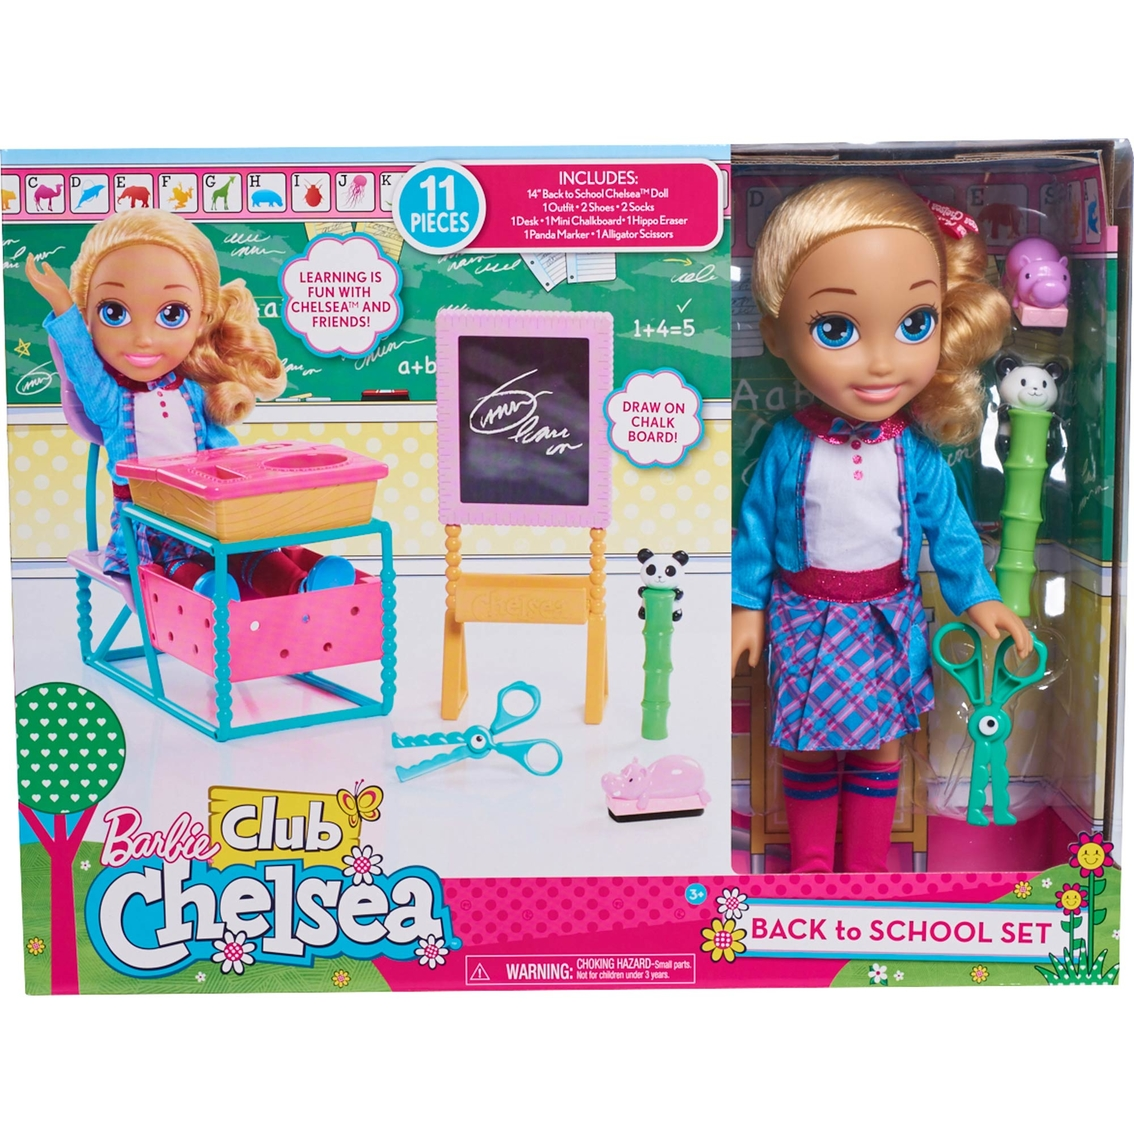 Barbie Club Chelsea Back To School Set Doll Playsets Baby Toys